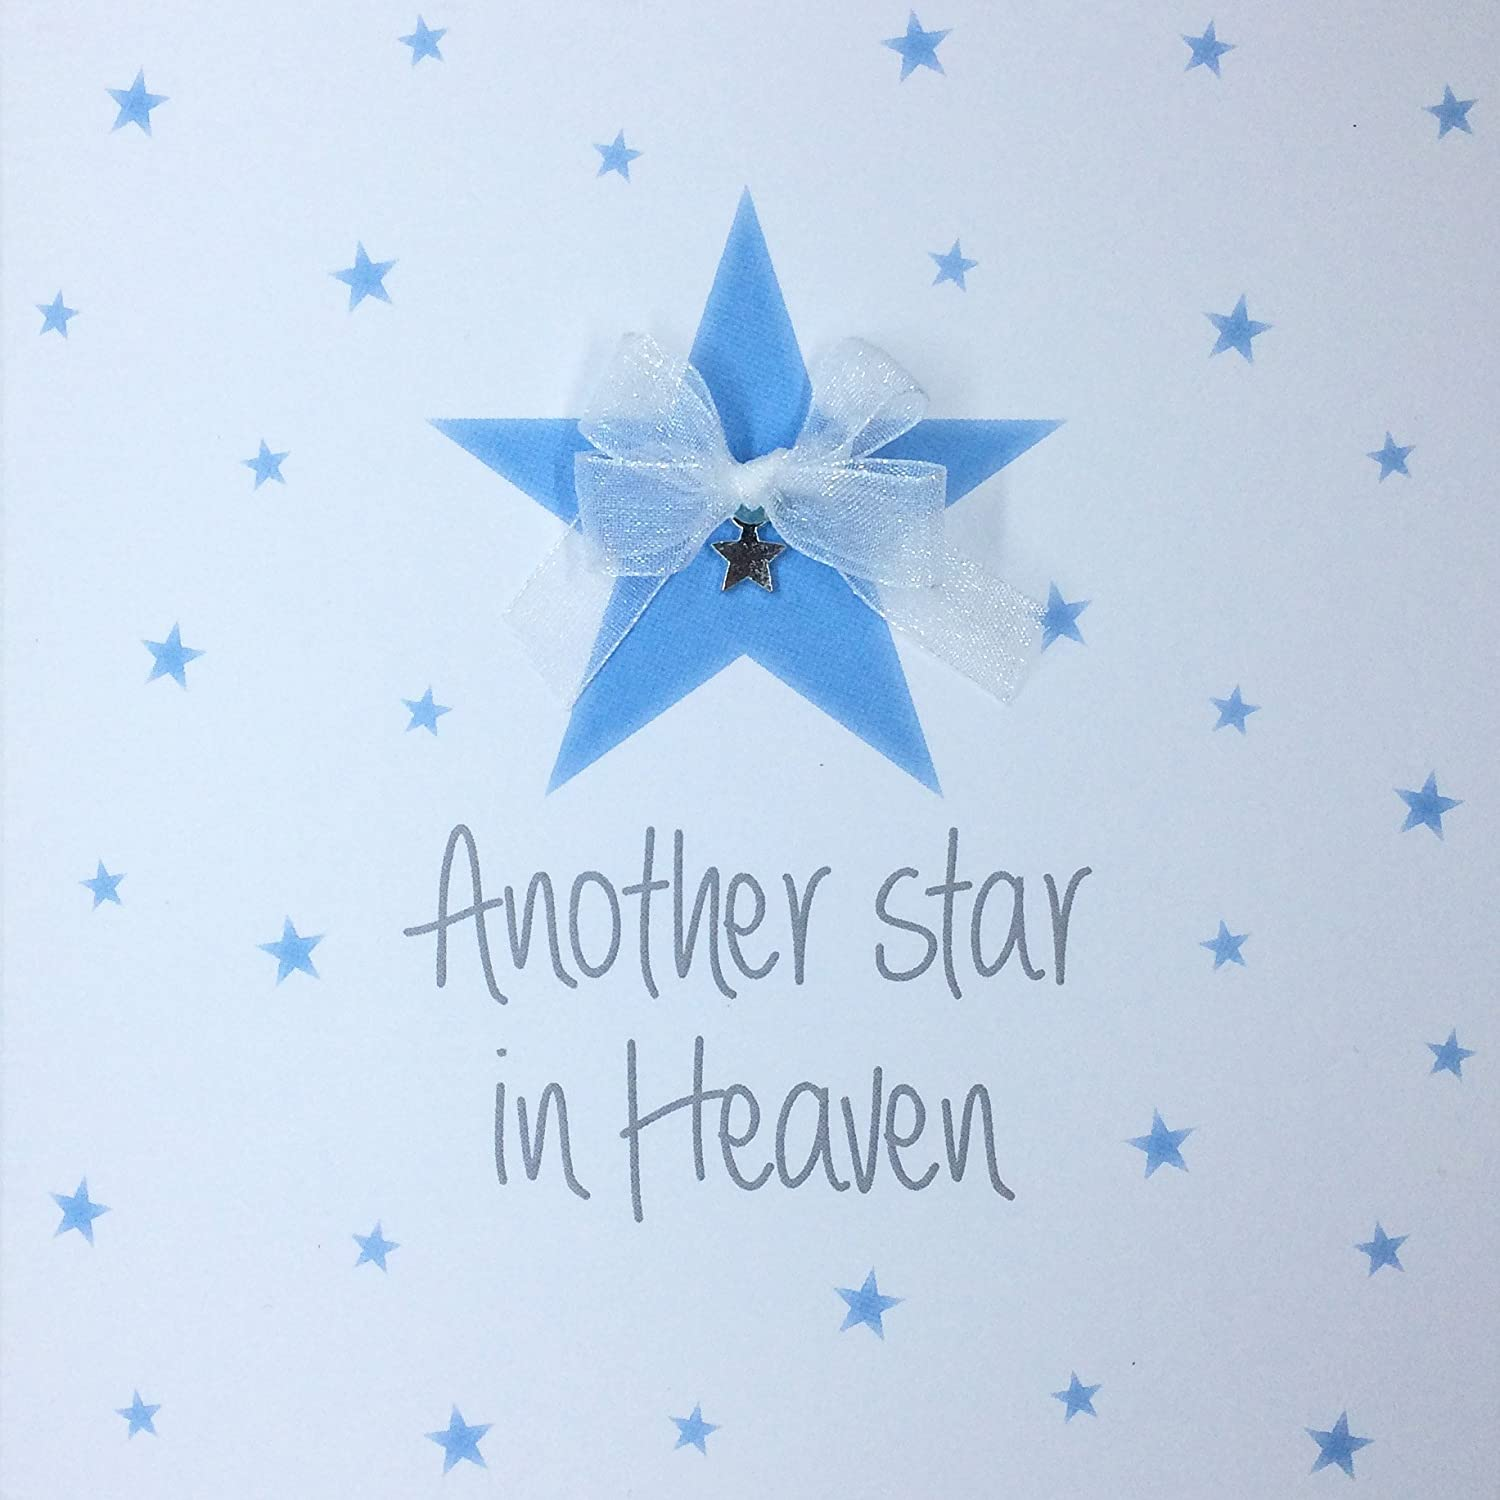 'Another Star in Heaven' Sympathy, Condolences Card for Loss of Child, Son, Baby boy, miscarriage, stillbirth. Hand Finished with a Silvery Star and an Organza Bow PUSHING THE ENVELOPE